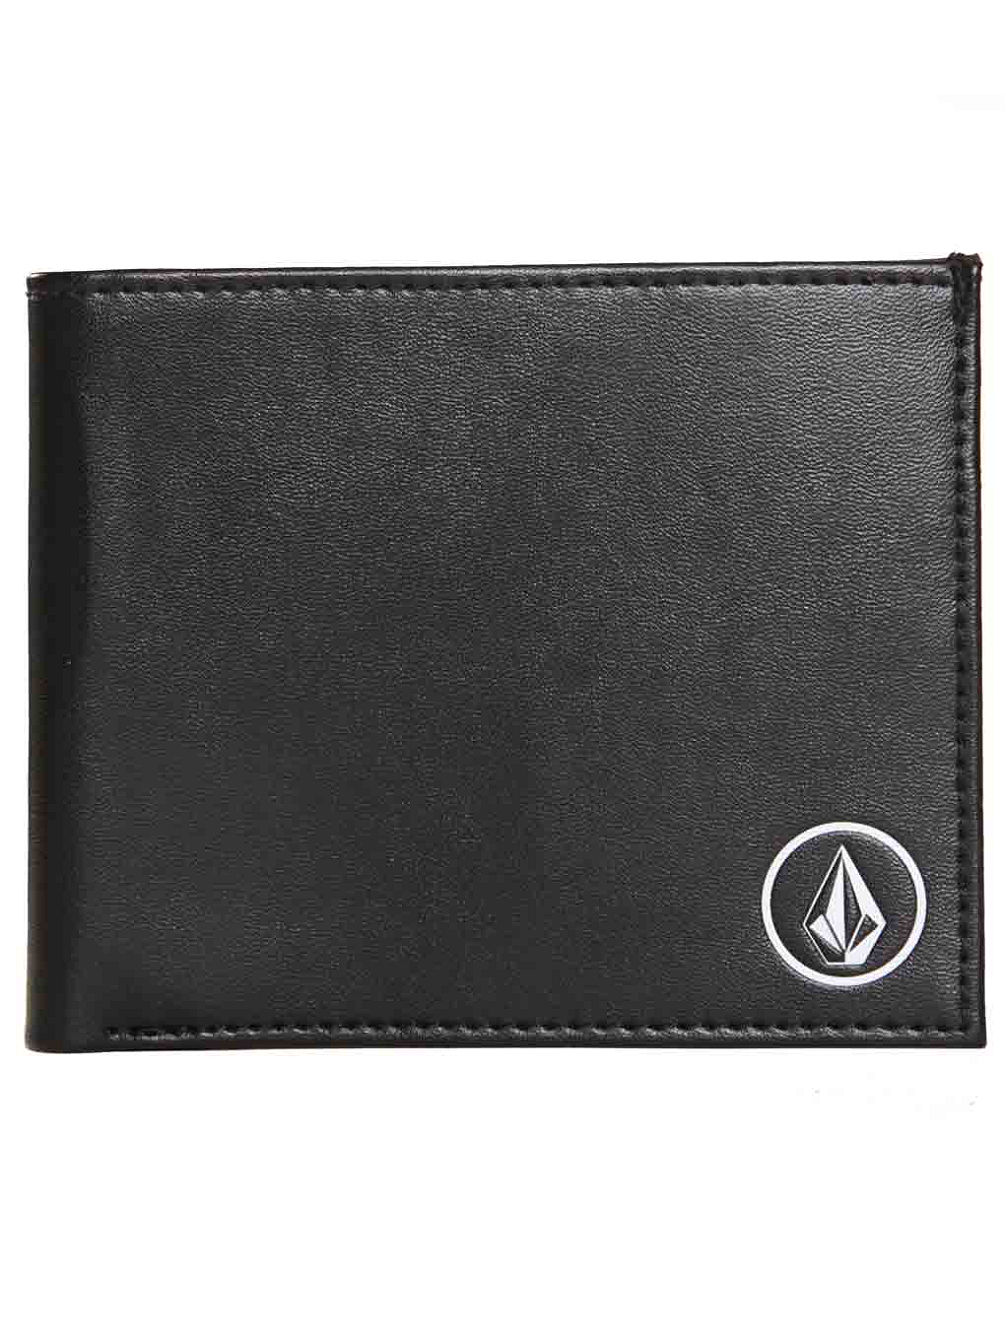 Corps Large Wallet